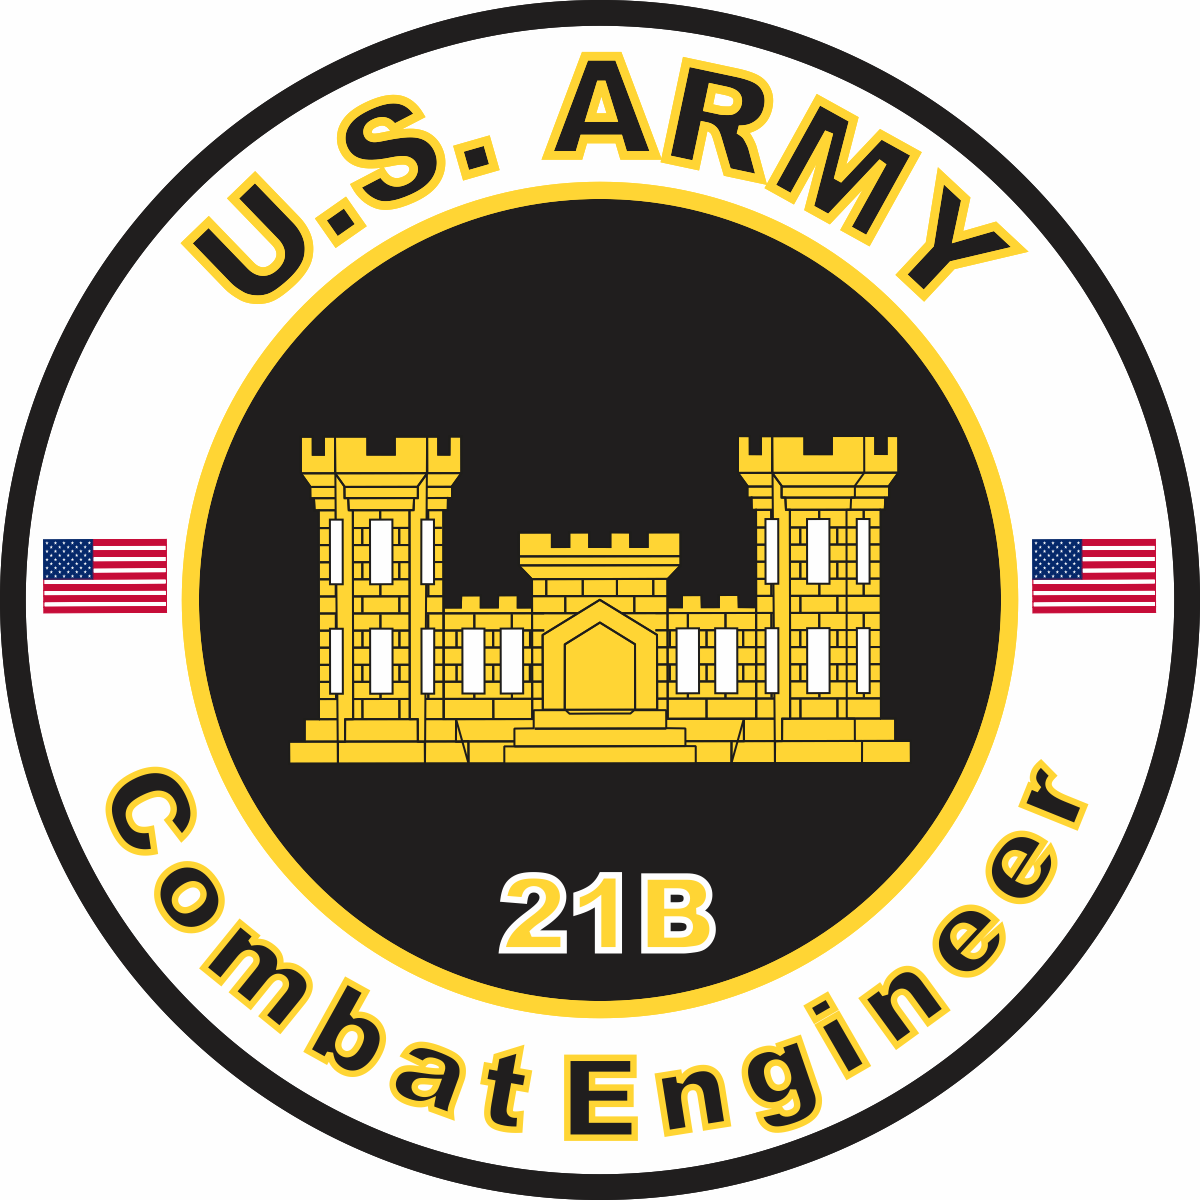 Combat Engineer Logo | was an Army Combat Engineer. Got ... |Usmc Combat Engineer Logo